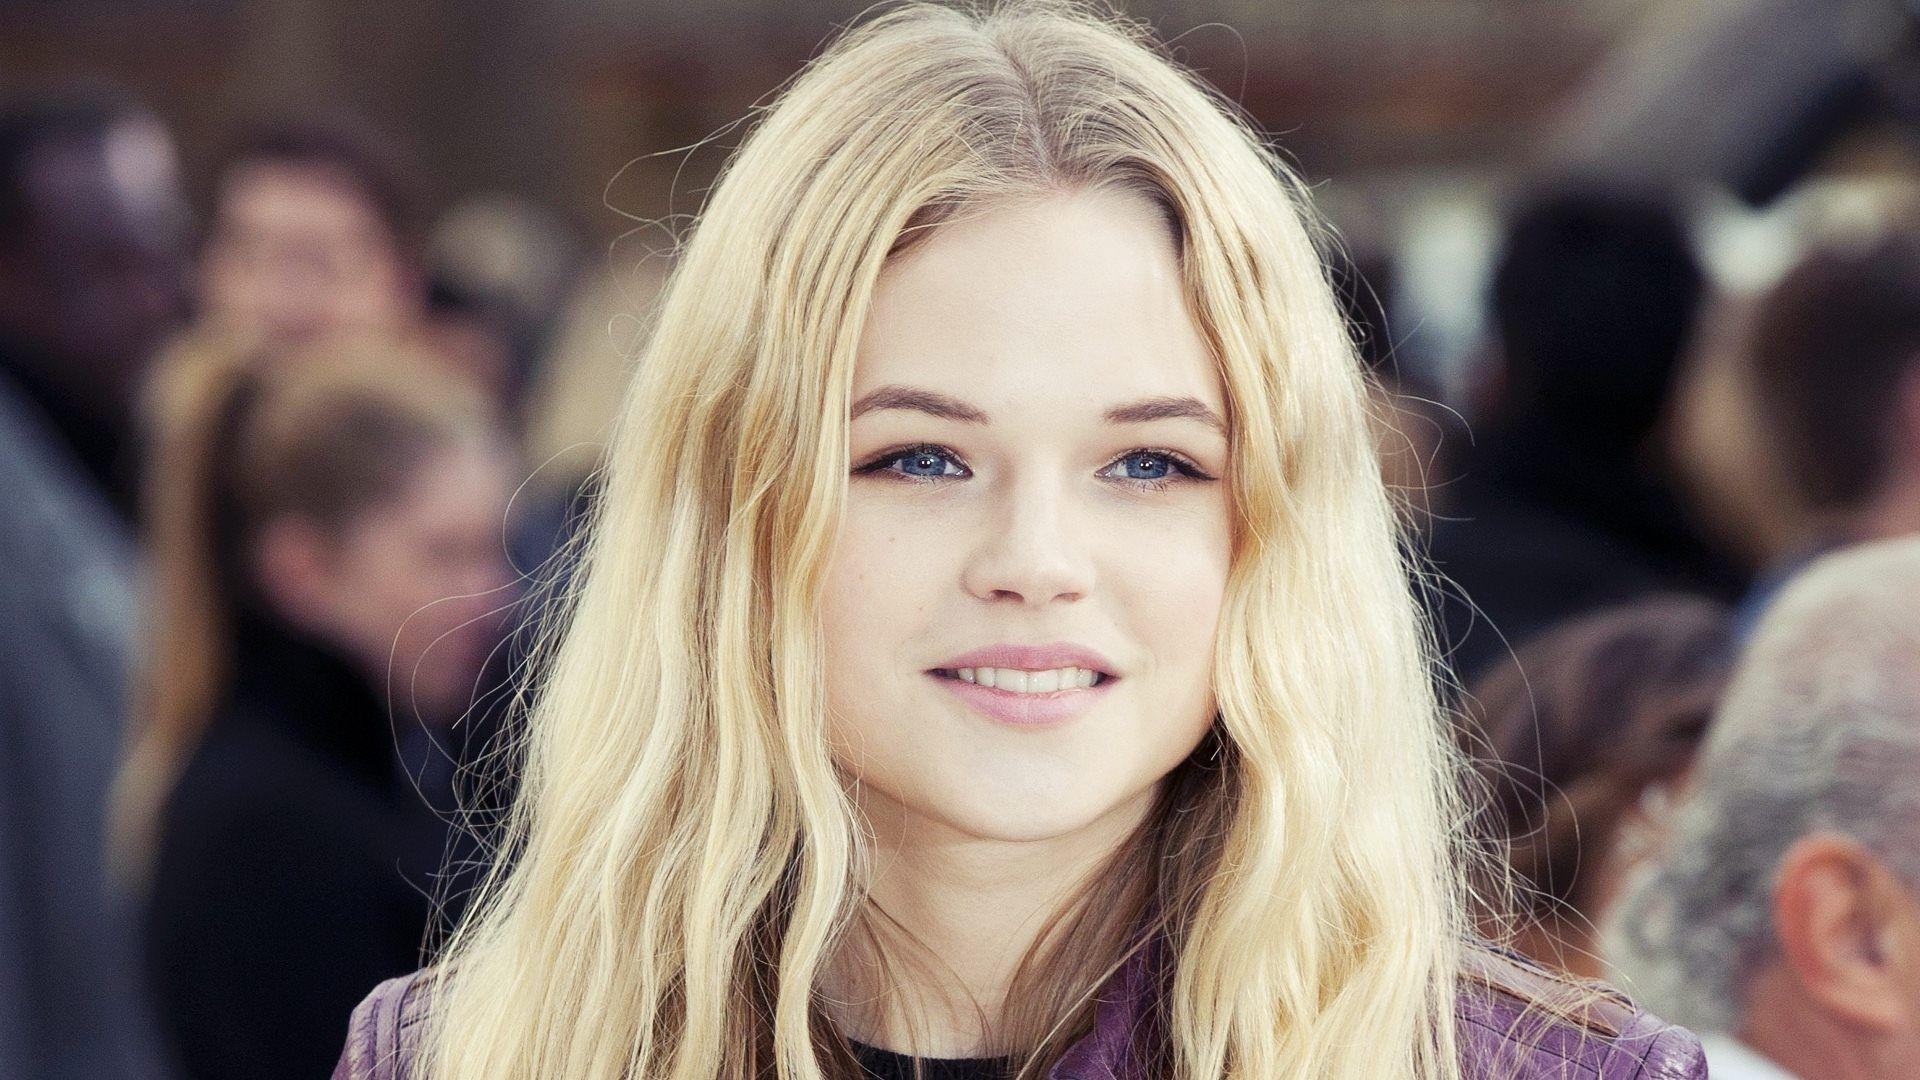 Gabriella Wilde at 640 x 1136 iPhone 5 size wallpapers HD quality